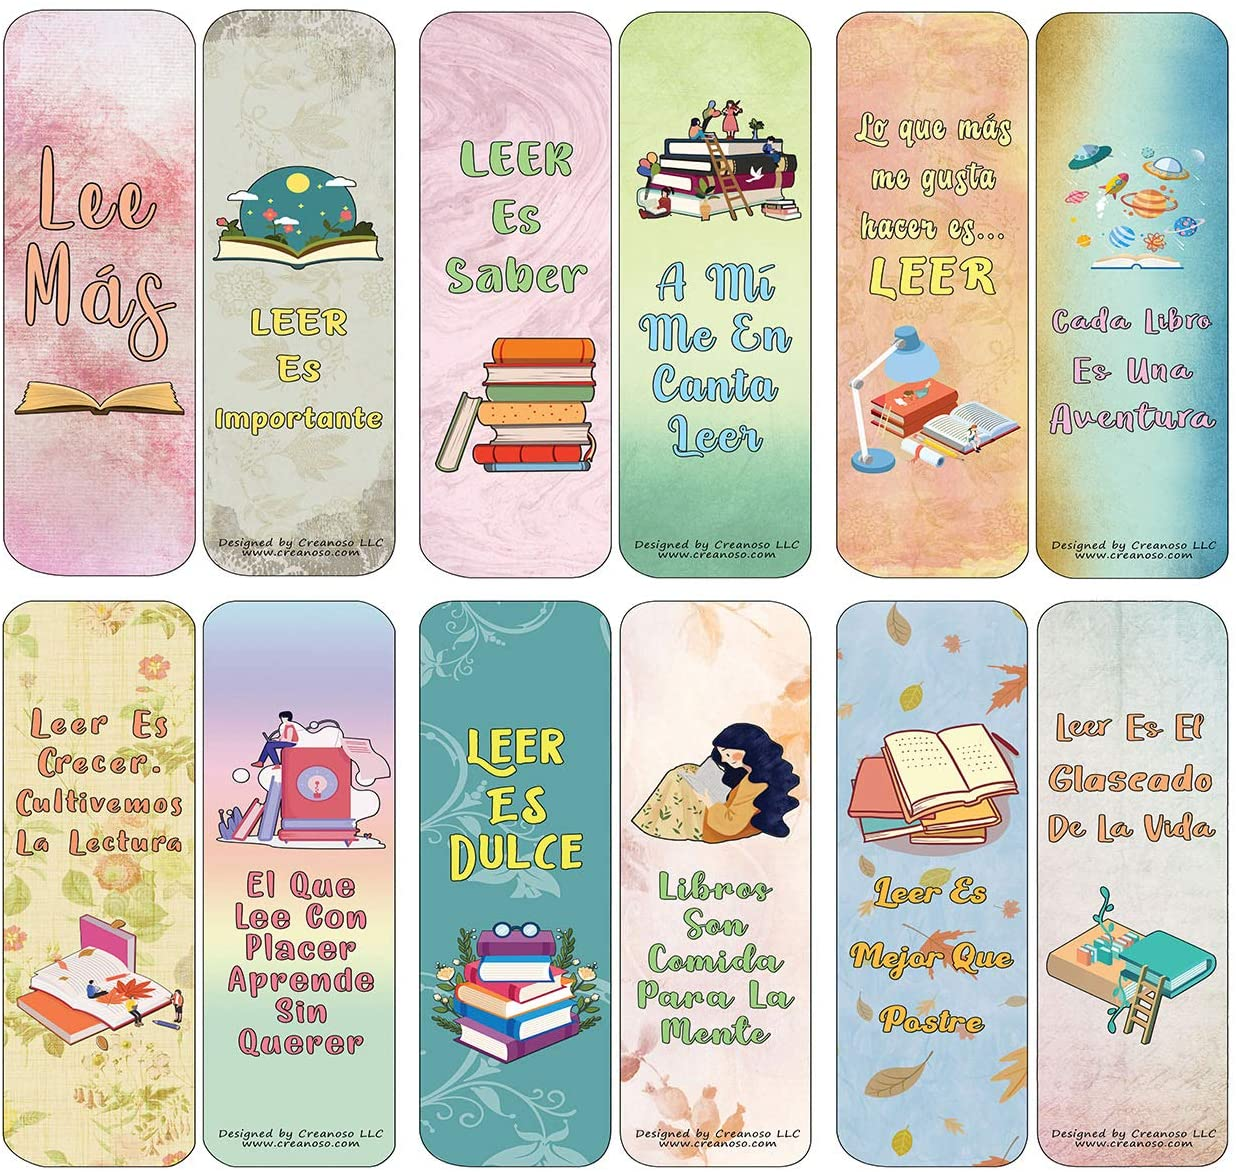 Creanoso Spanish Puntos de Libro Marcapáginas Bookmarks Cards (60-Pack) - Premium Quality Gift Ideas for Children, Teens, Adults for All Occasions - Stocking Stuffers Party Favor & Giveaways